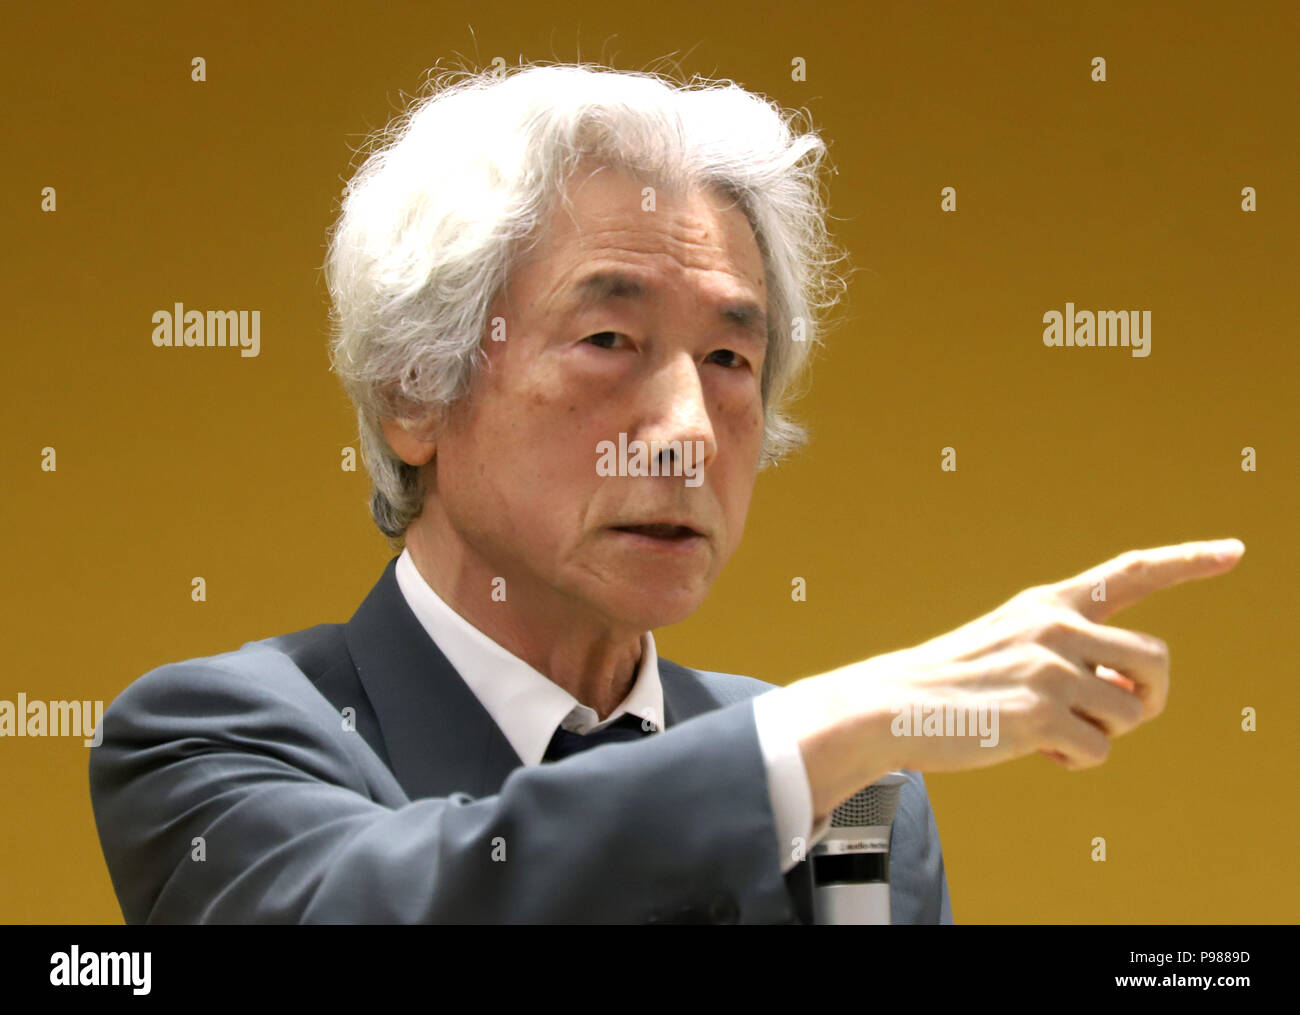 Tokyo, Japan. 15th July, 2018. Former Japanese Prime Minister Junichiro Koizumi speaks before membersof Ichiro Ozawa's Liberal Party in Tokyo on Sunday, July 15, 2018. Two political rivals Koizumi and Ozawa cooperate for the movement away from nuclear energy after the March 11 nuclear accident at TEPCO's Fukushima nuclear plant. Credit: Yoshio Tsunoda/AFLO/Alamy Live News - Stock Image